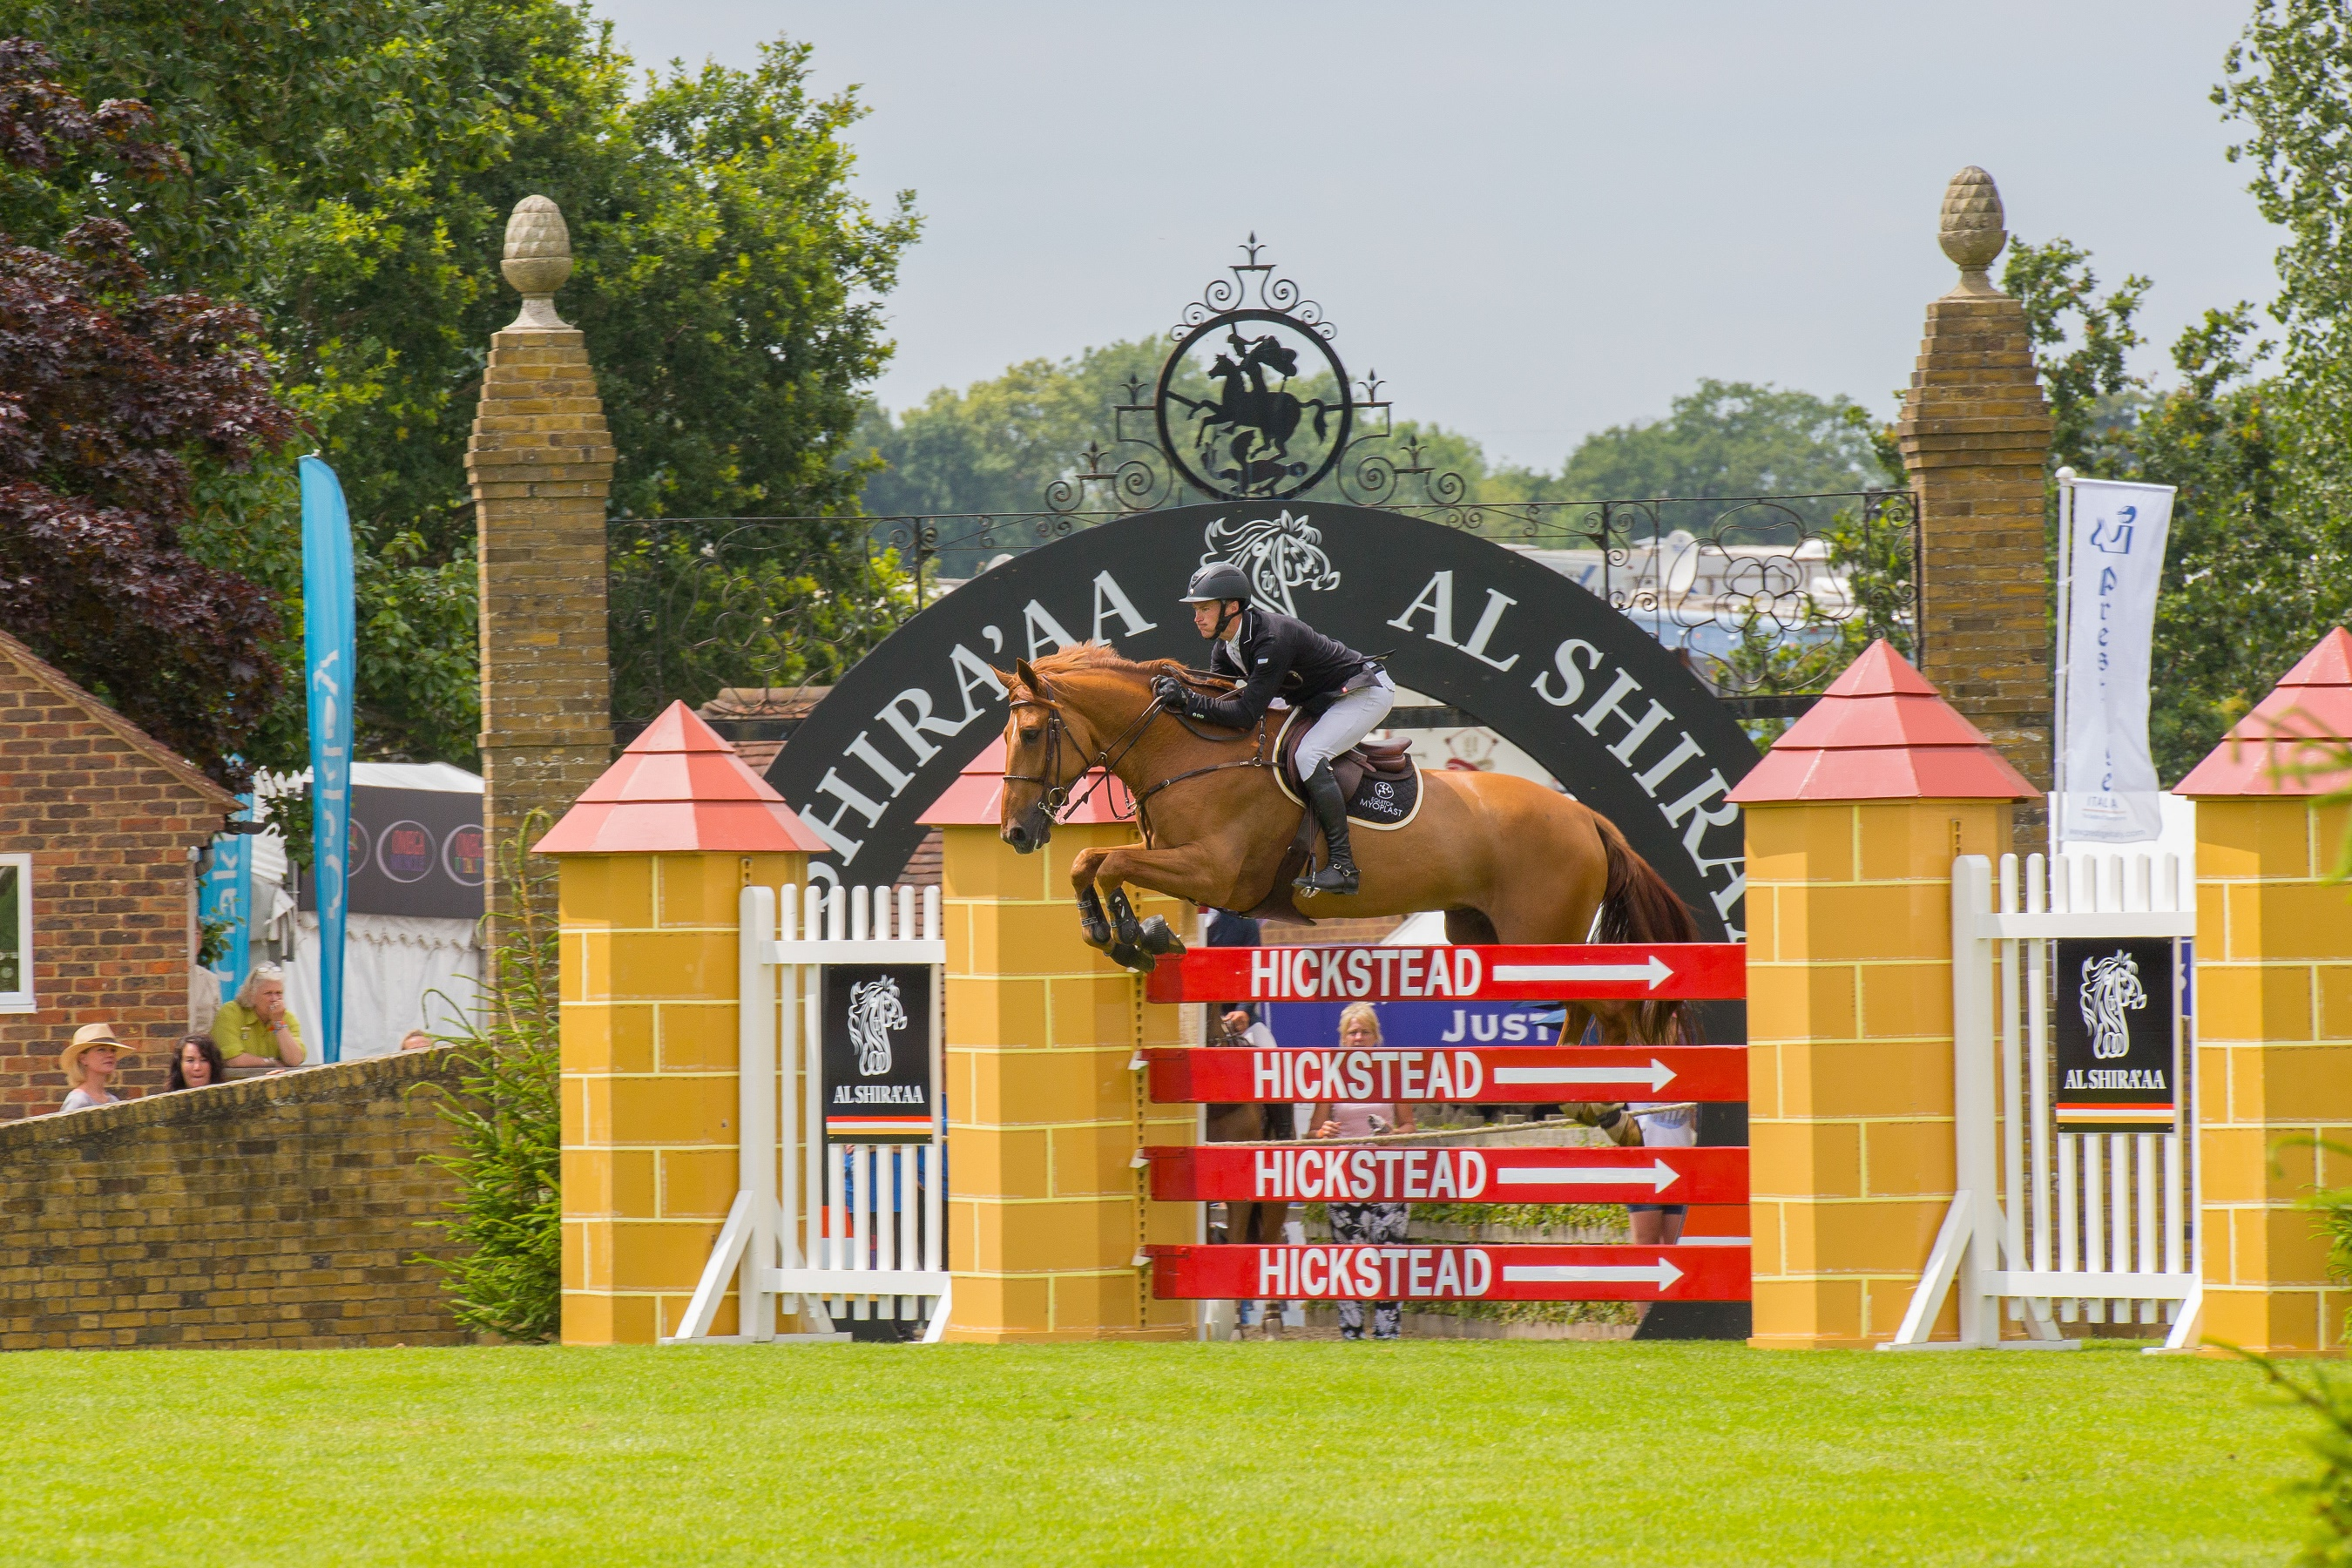 Trade Stands Hickstead : Win two members enclosure tickets for the al shiraaa hickstead